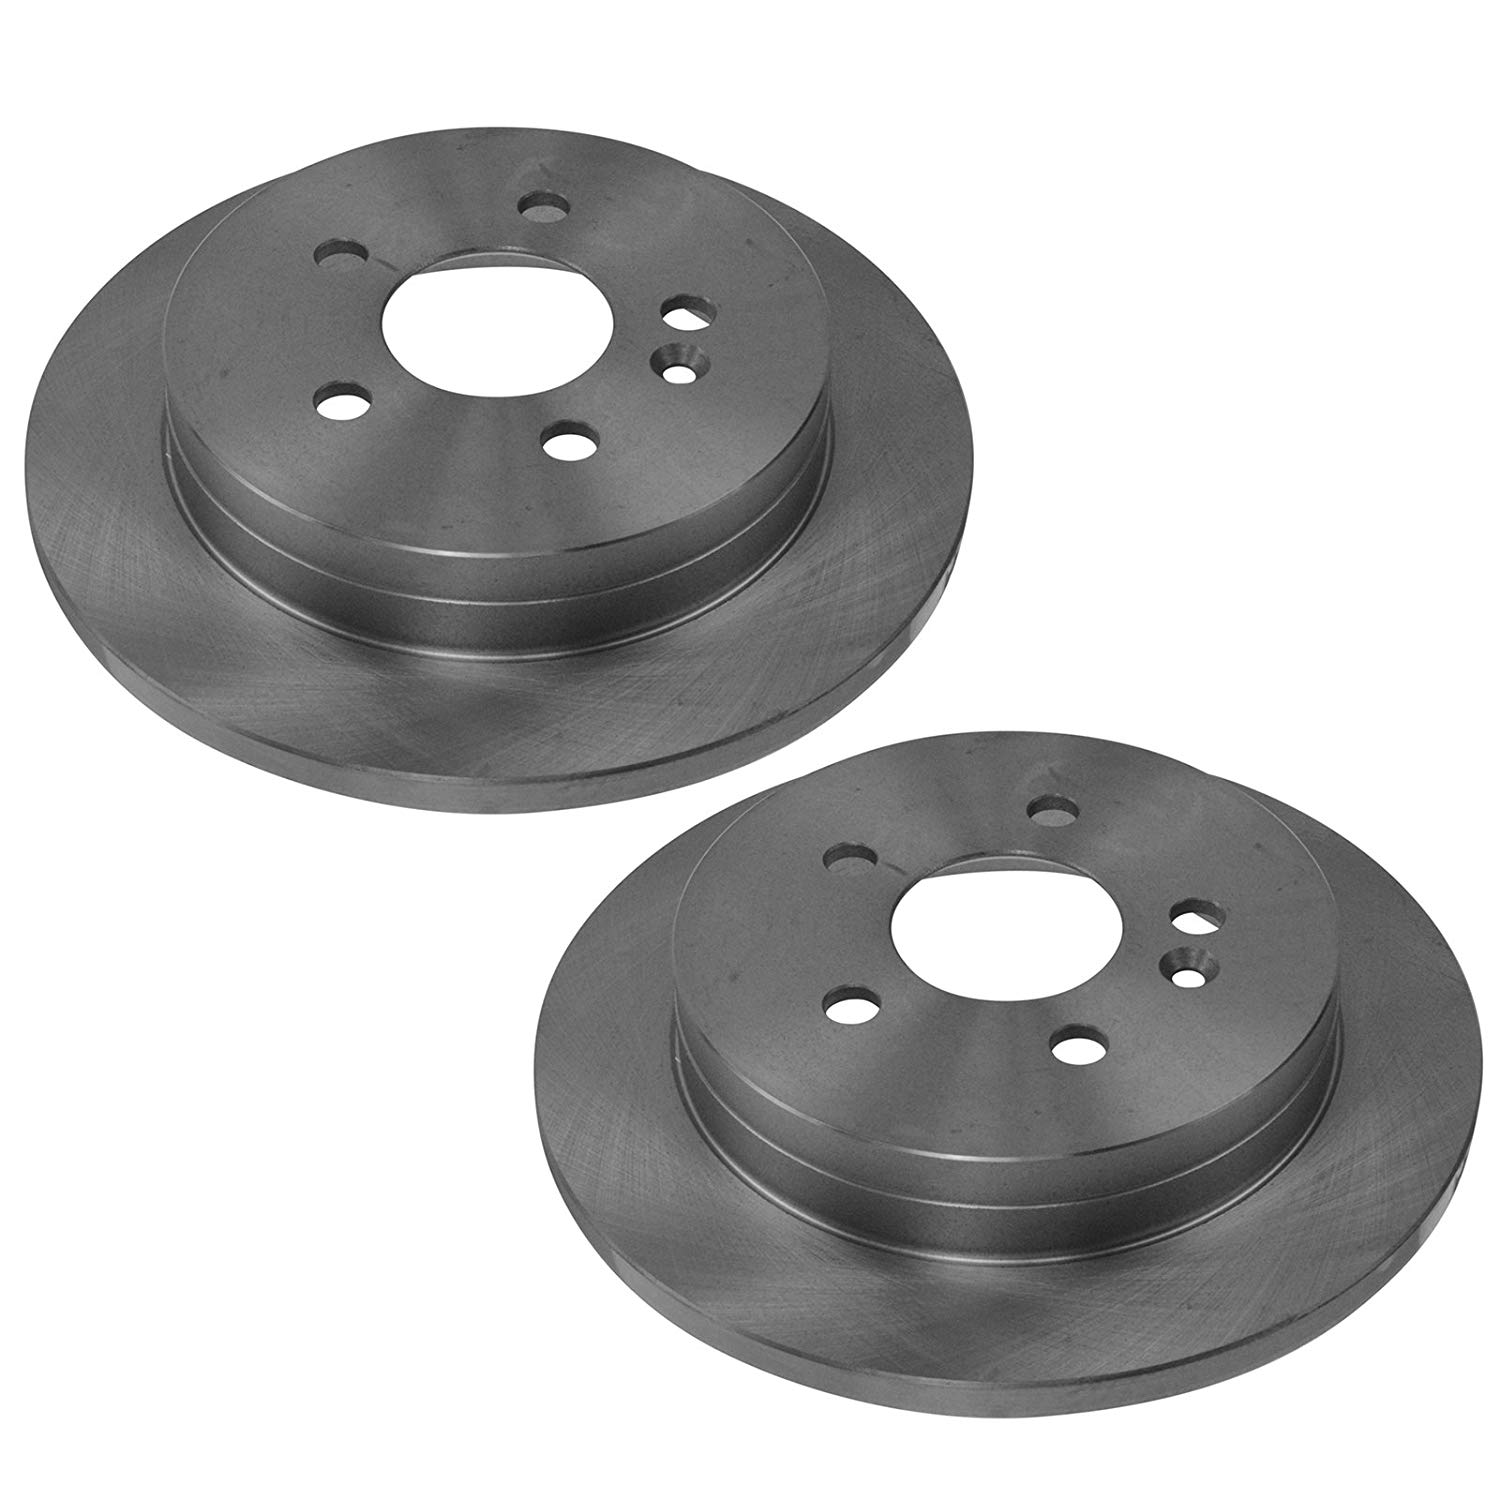 Cheap Mercedes Brake Parts Find Deals On Line Benz Ml350 2005 Rear Disc Rotors Set Pair For Ml320 Ml430